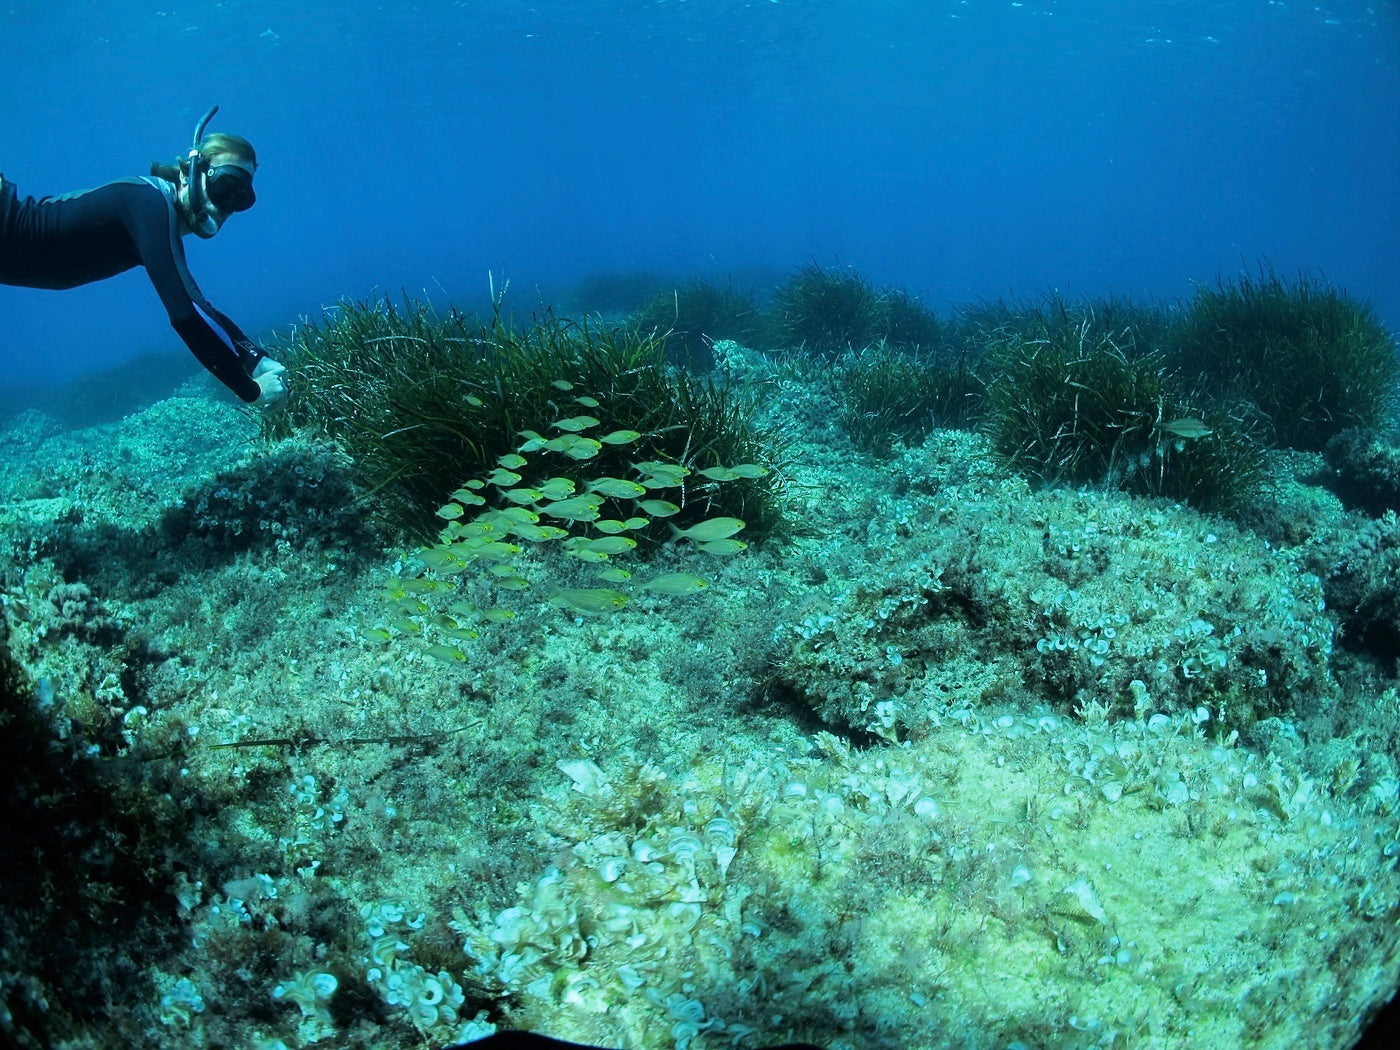 A diver can be seen tending to the seagrass meadow under water.